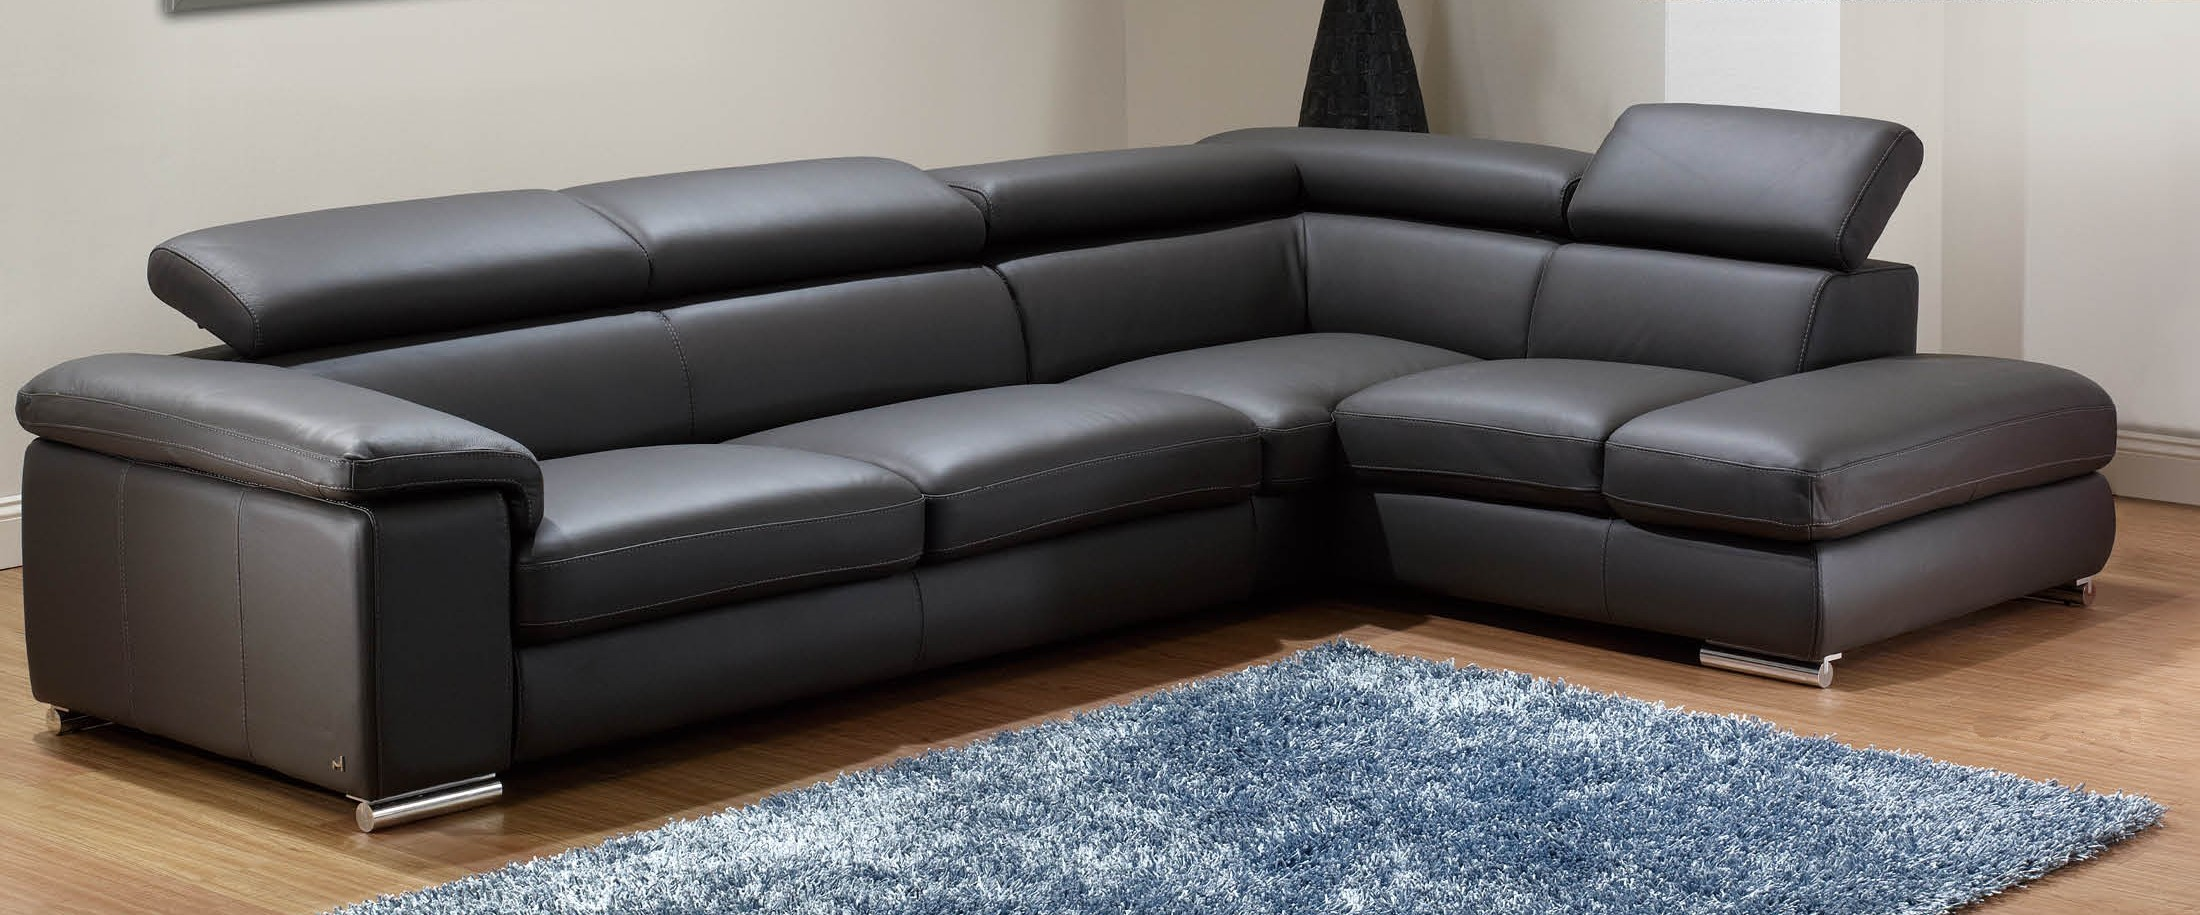 Living Room Design Awesome Black Leather Sectional For Elegant  ~ Modern Black Sectional Sofa